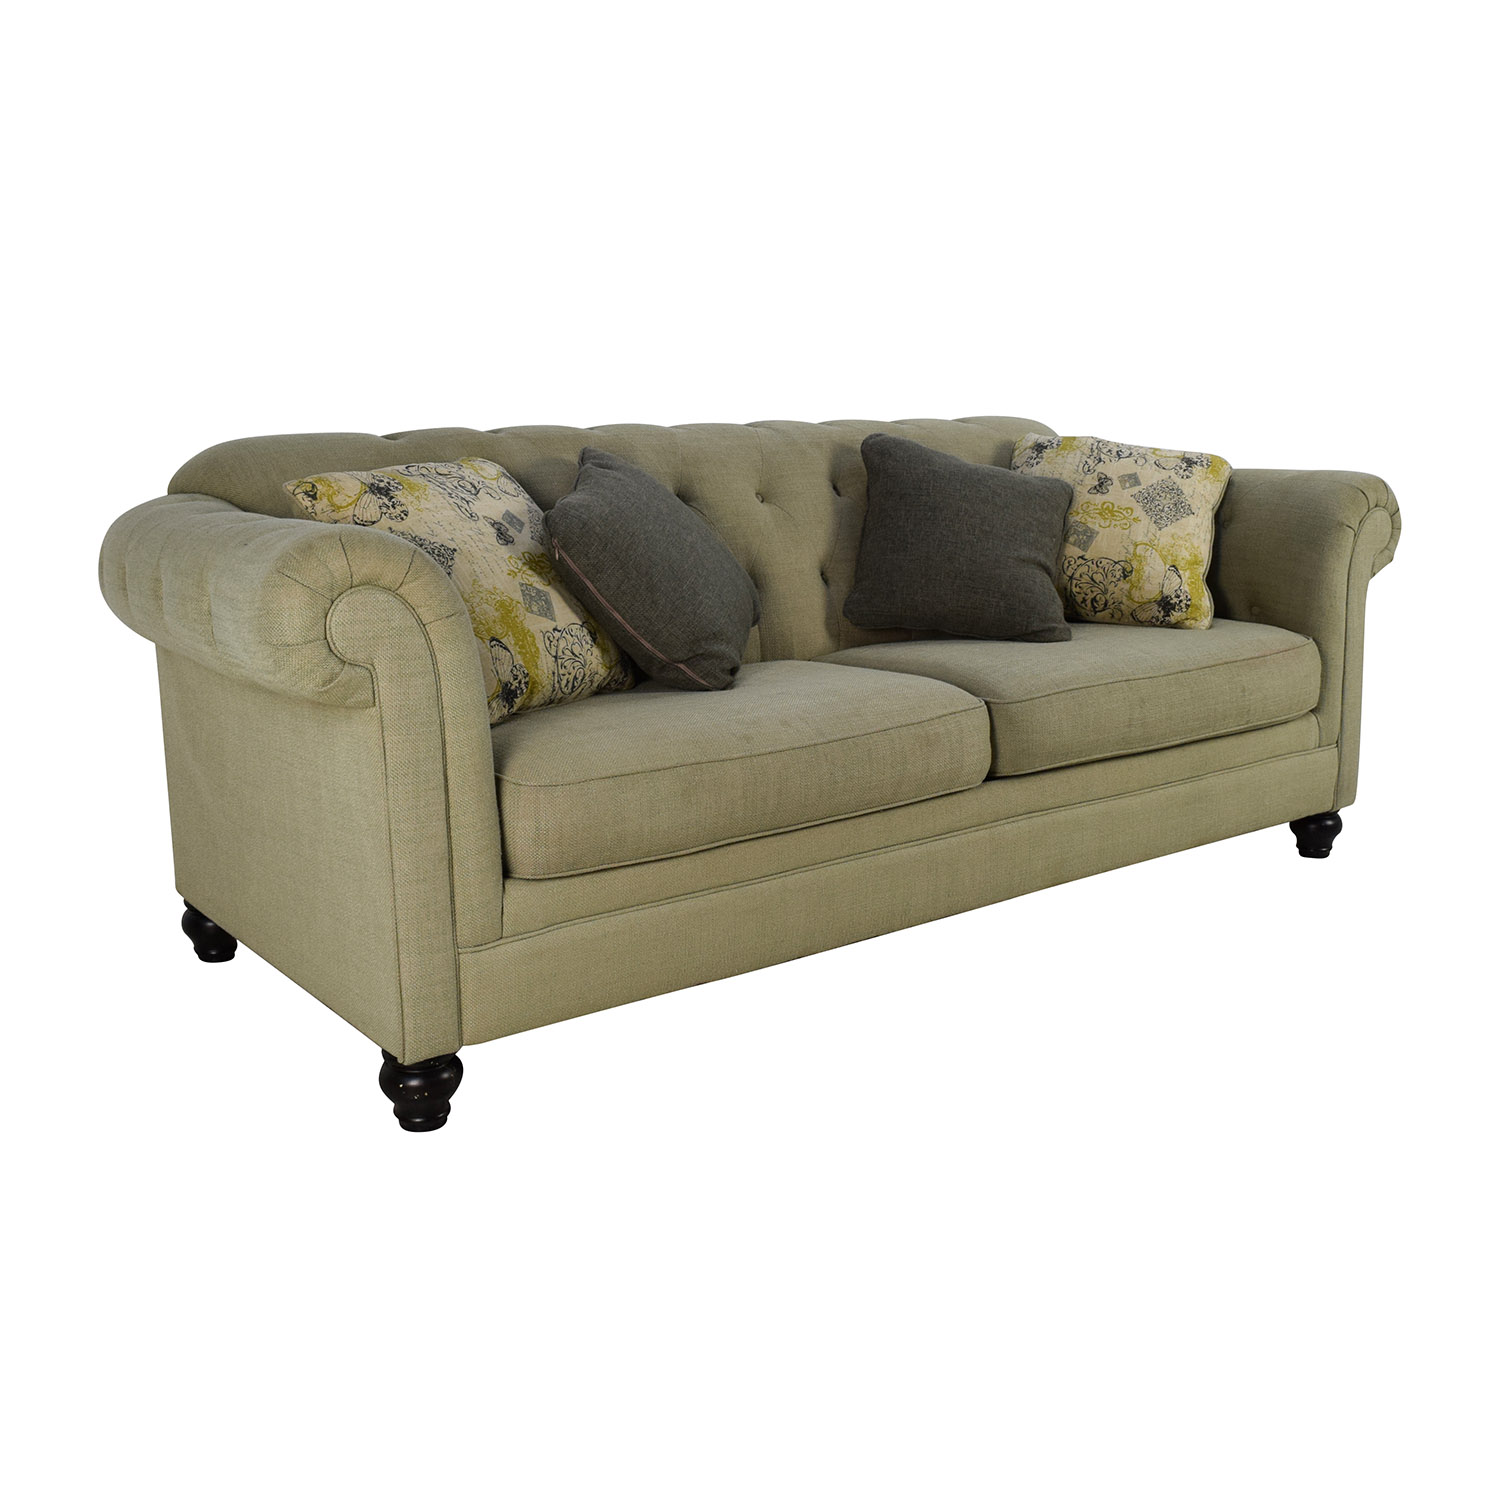 76 Off Ashley Furniture Ashley Furniture Hindell Park Putty Sofa Sofas